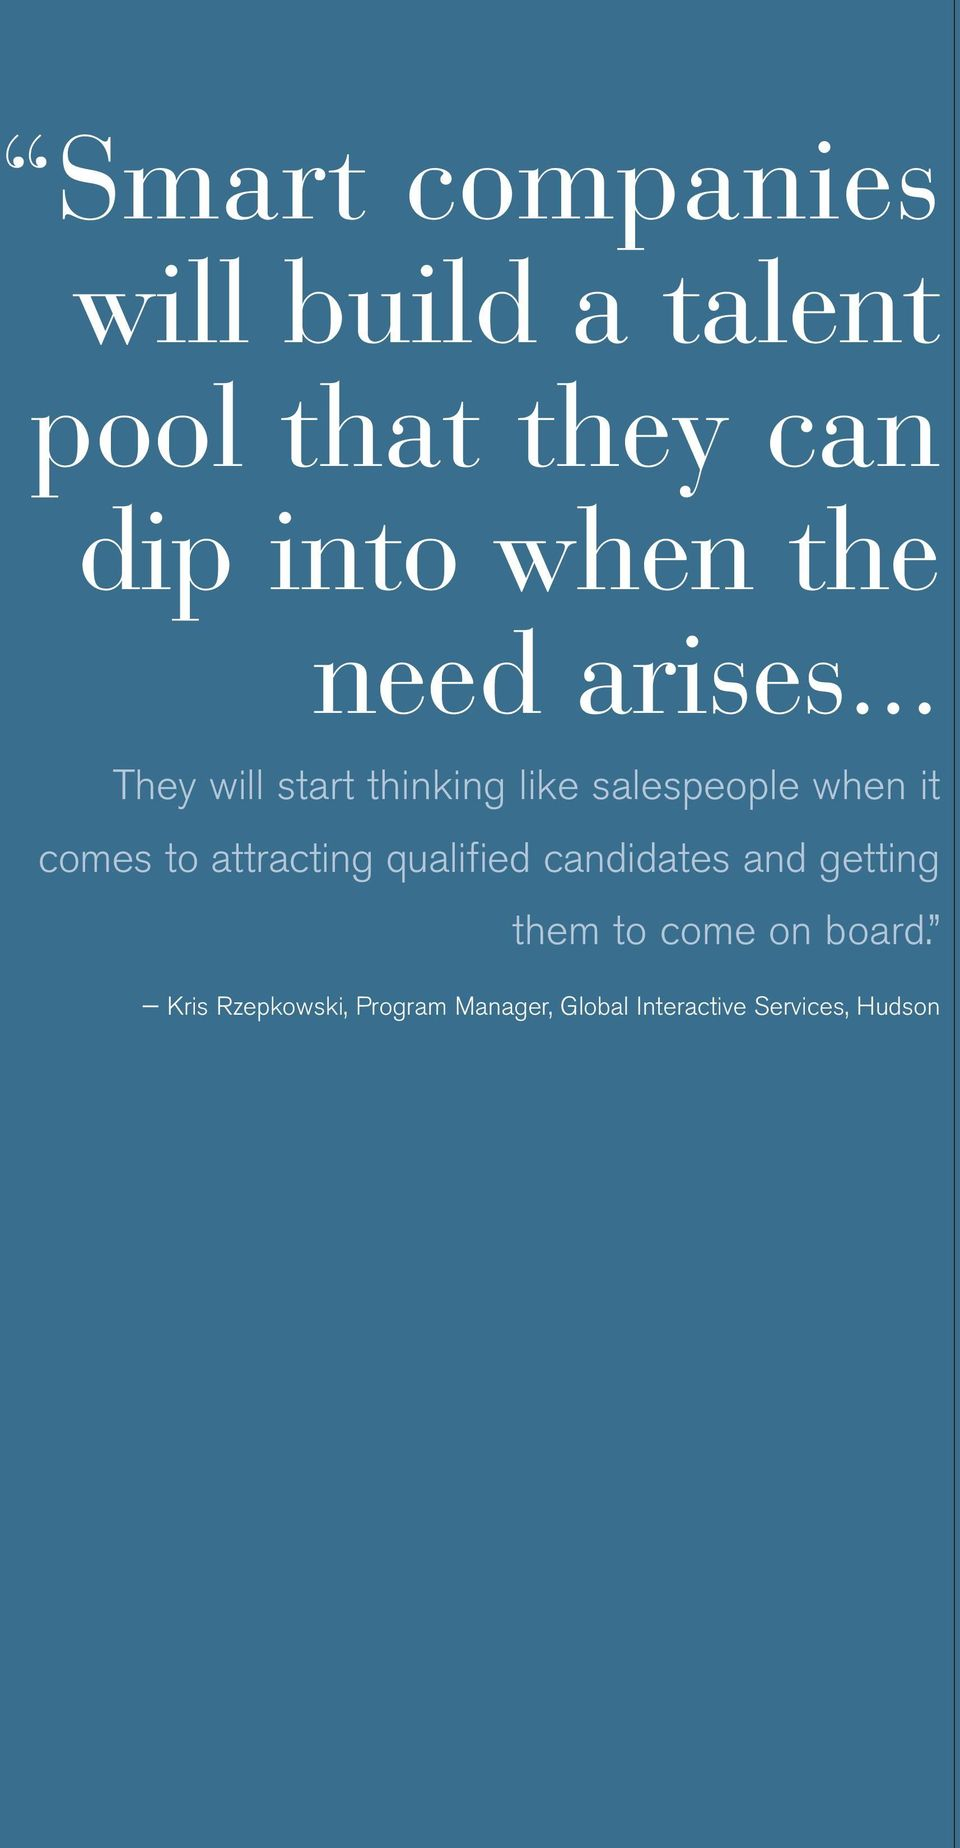 .. They will start thinking like salespeople when it comes to